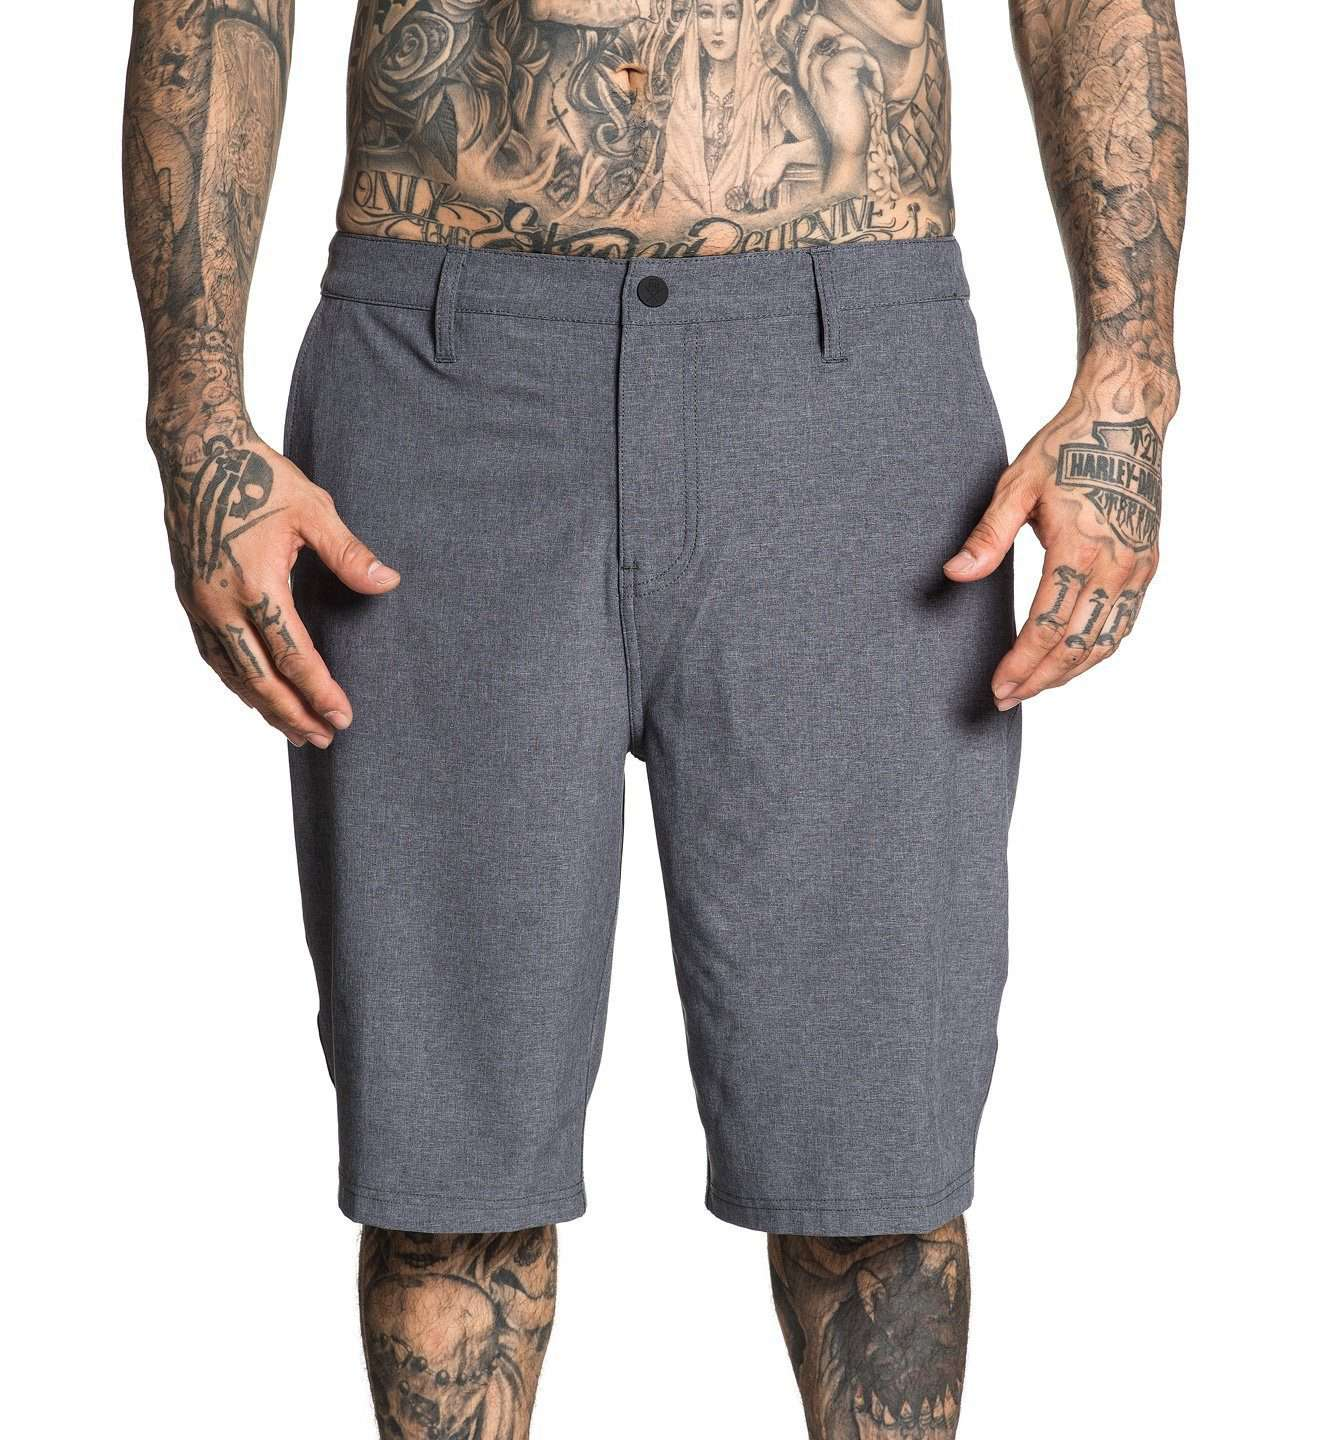 1e049b825d Complex Hybrid Shorts - Sullen Art Co.